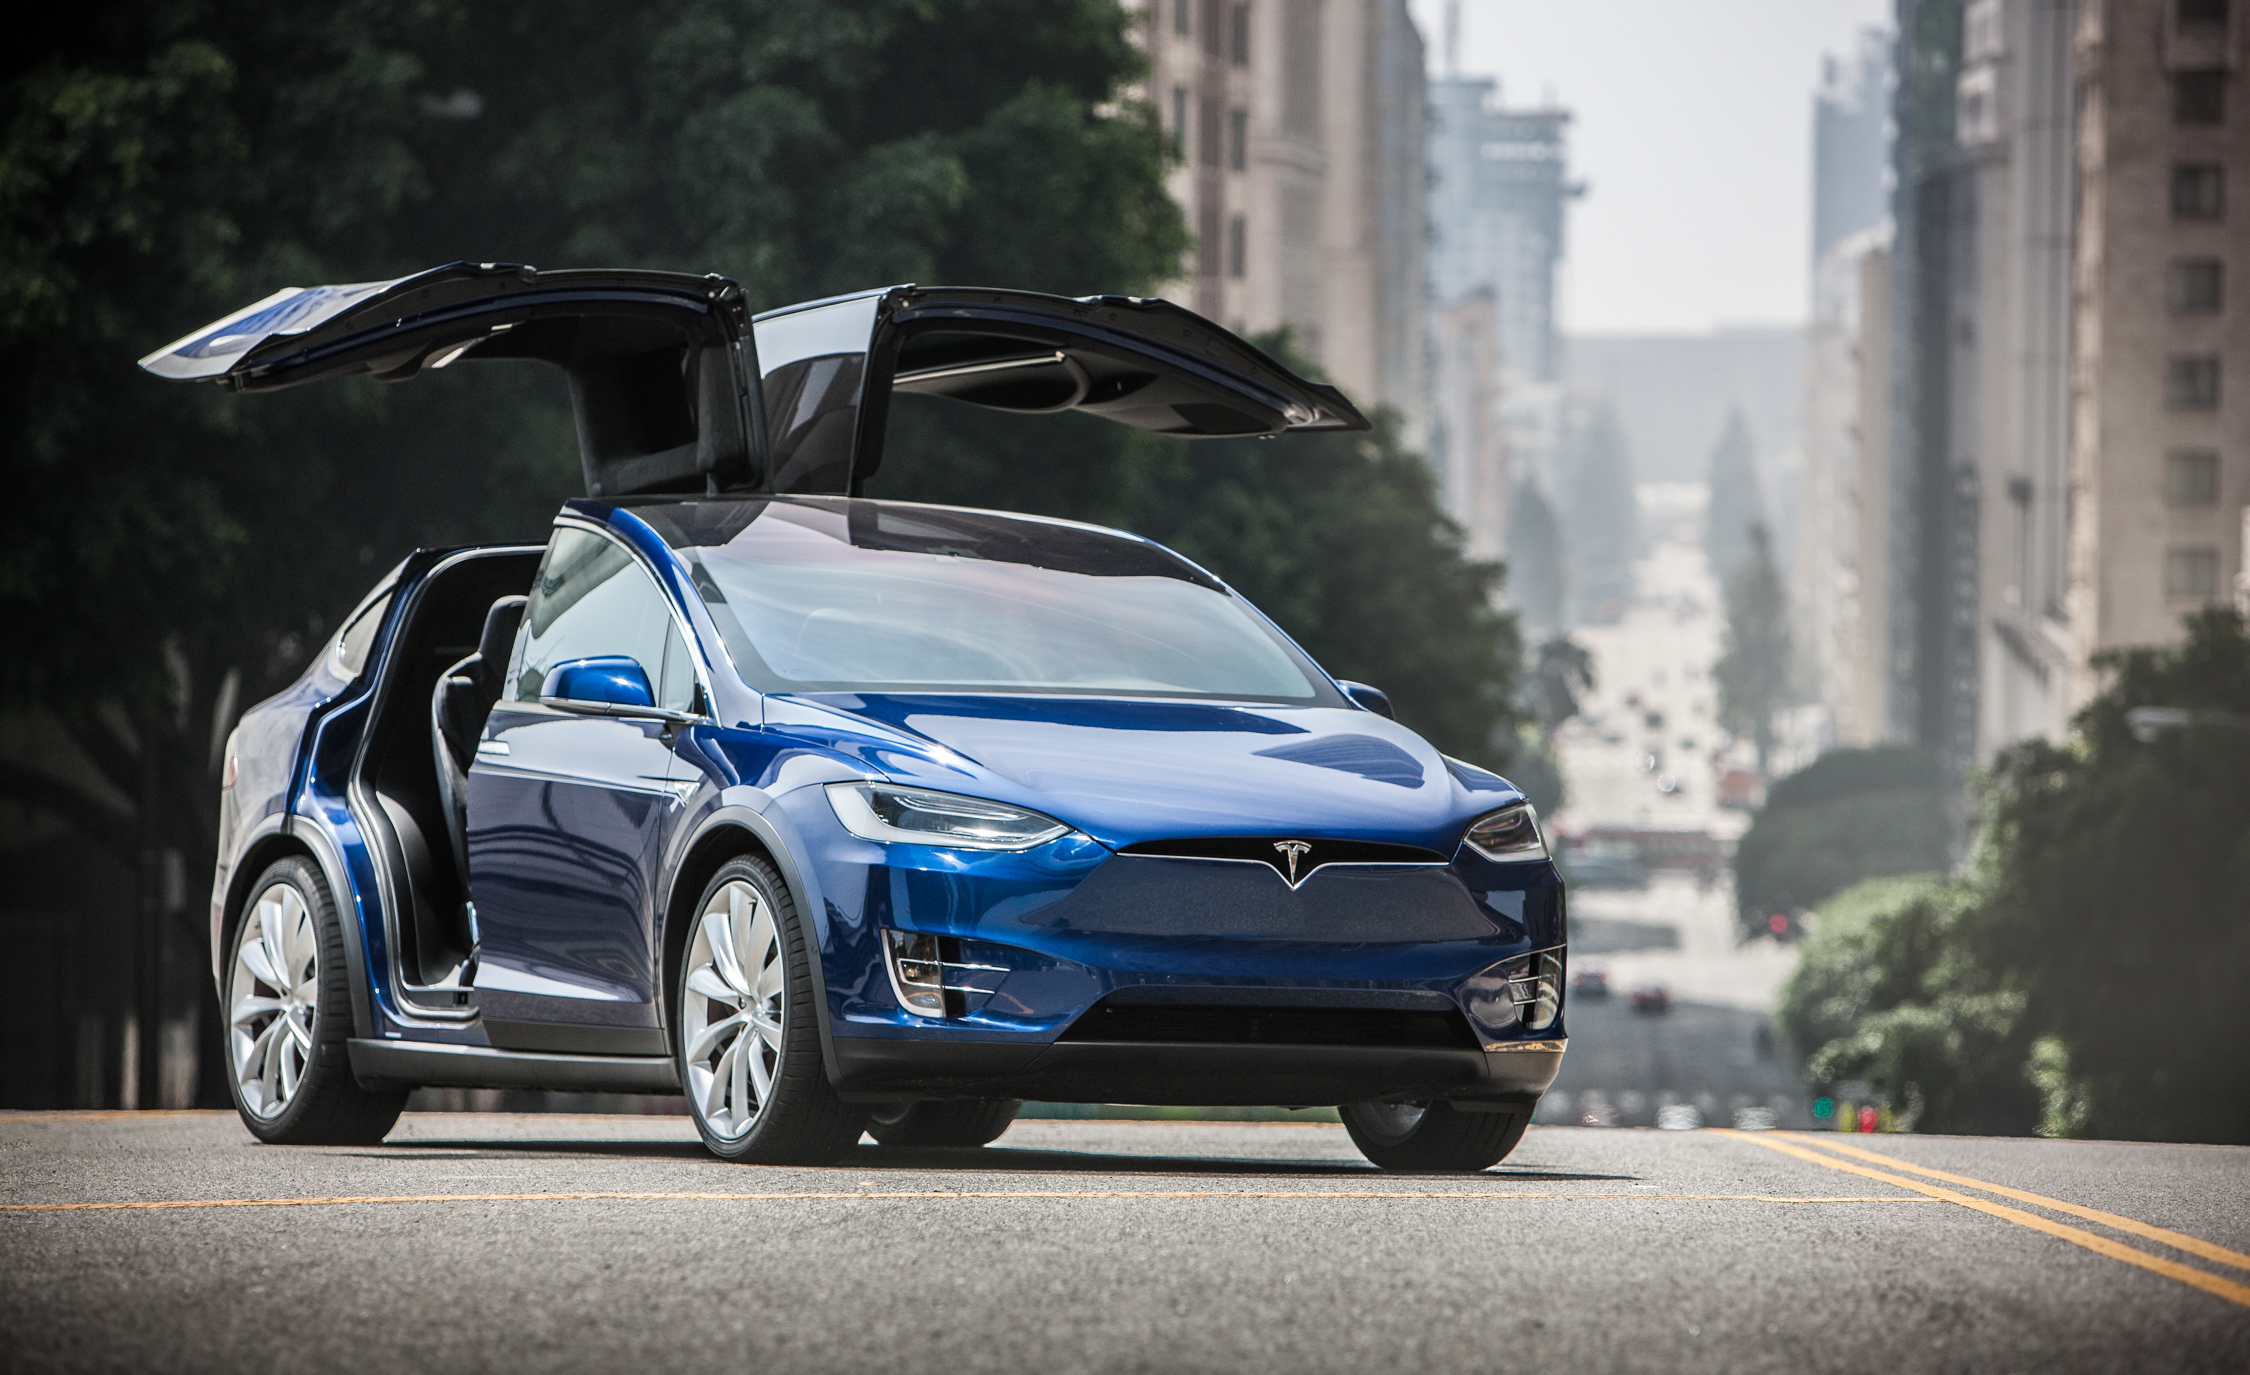 2016 Tesla Model X (View 4 of 13)